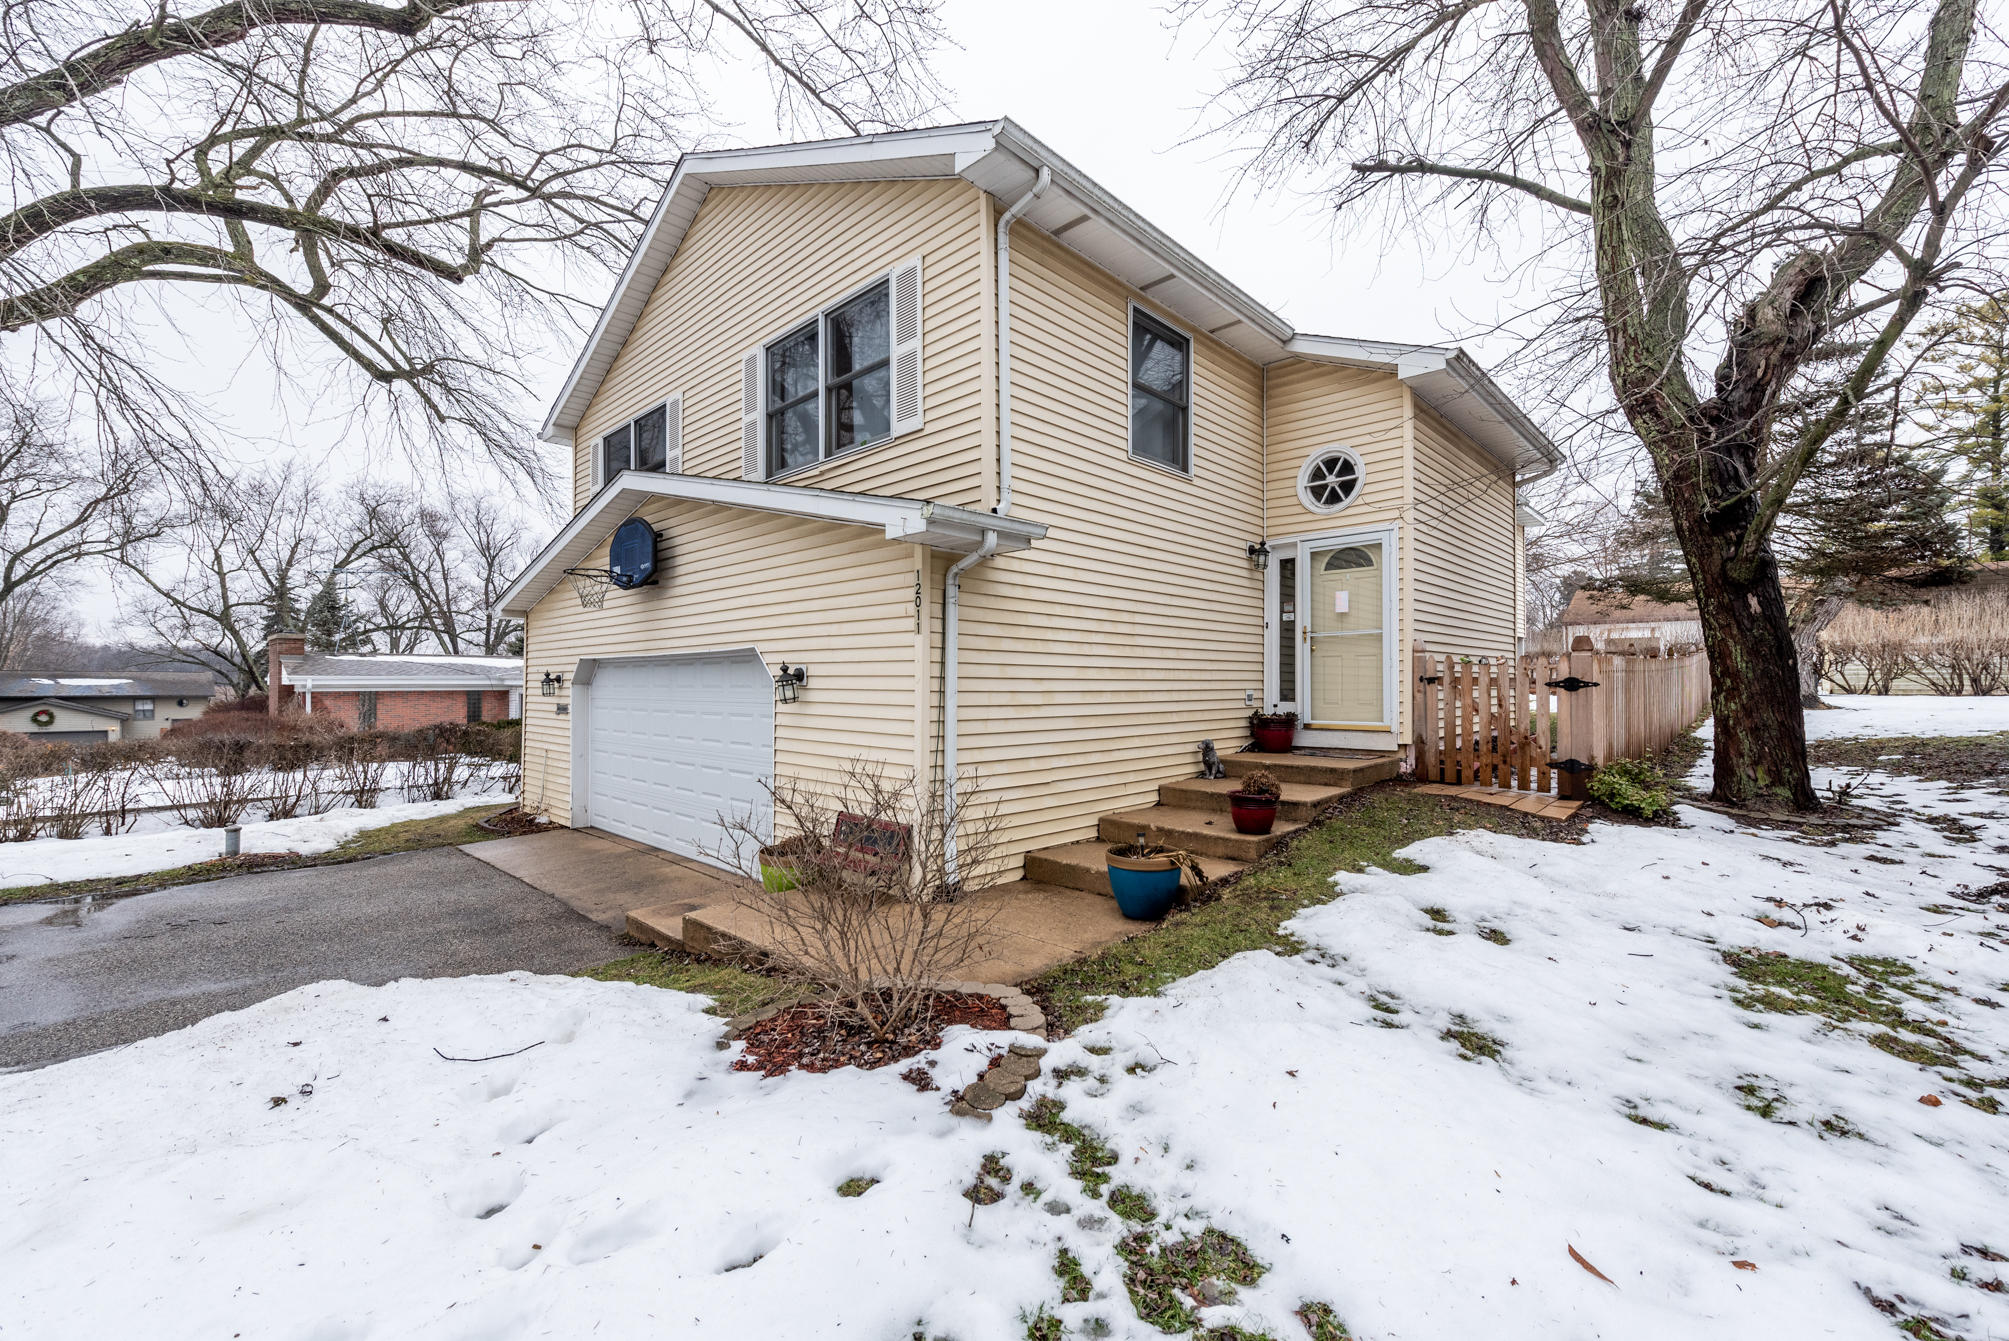 Salem WI 53179 Listed By RE MAX Advantage Realty